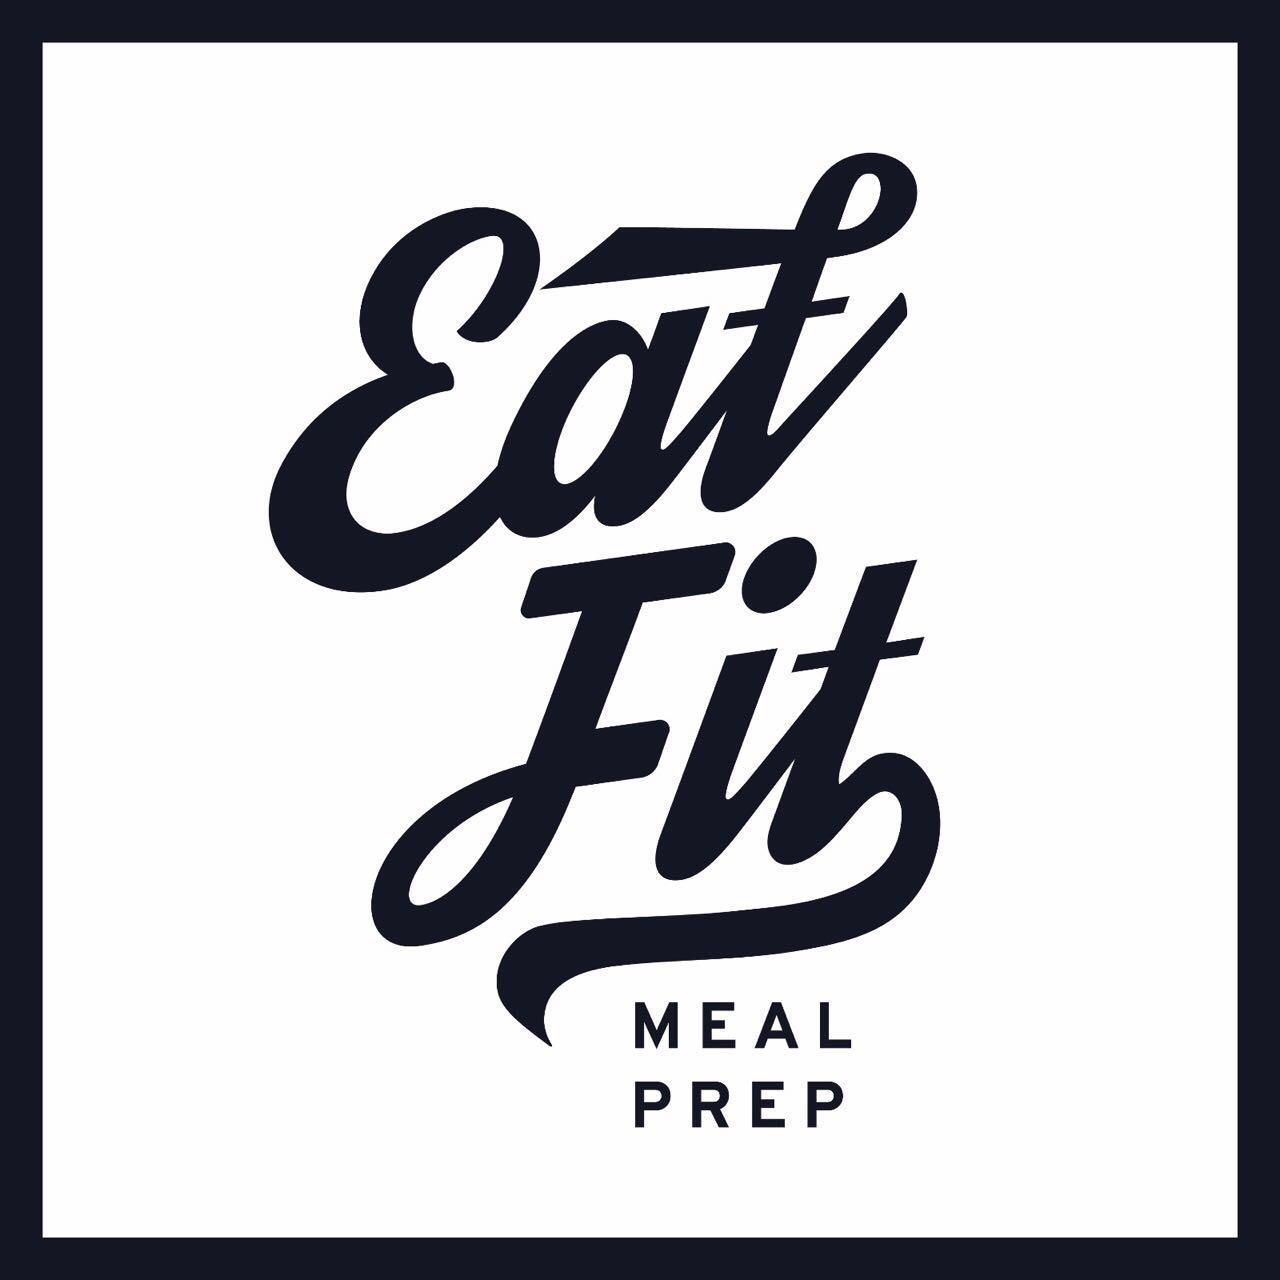 Eat Fit Meal Prep